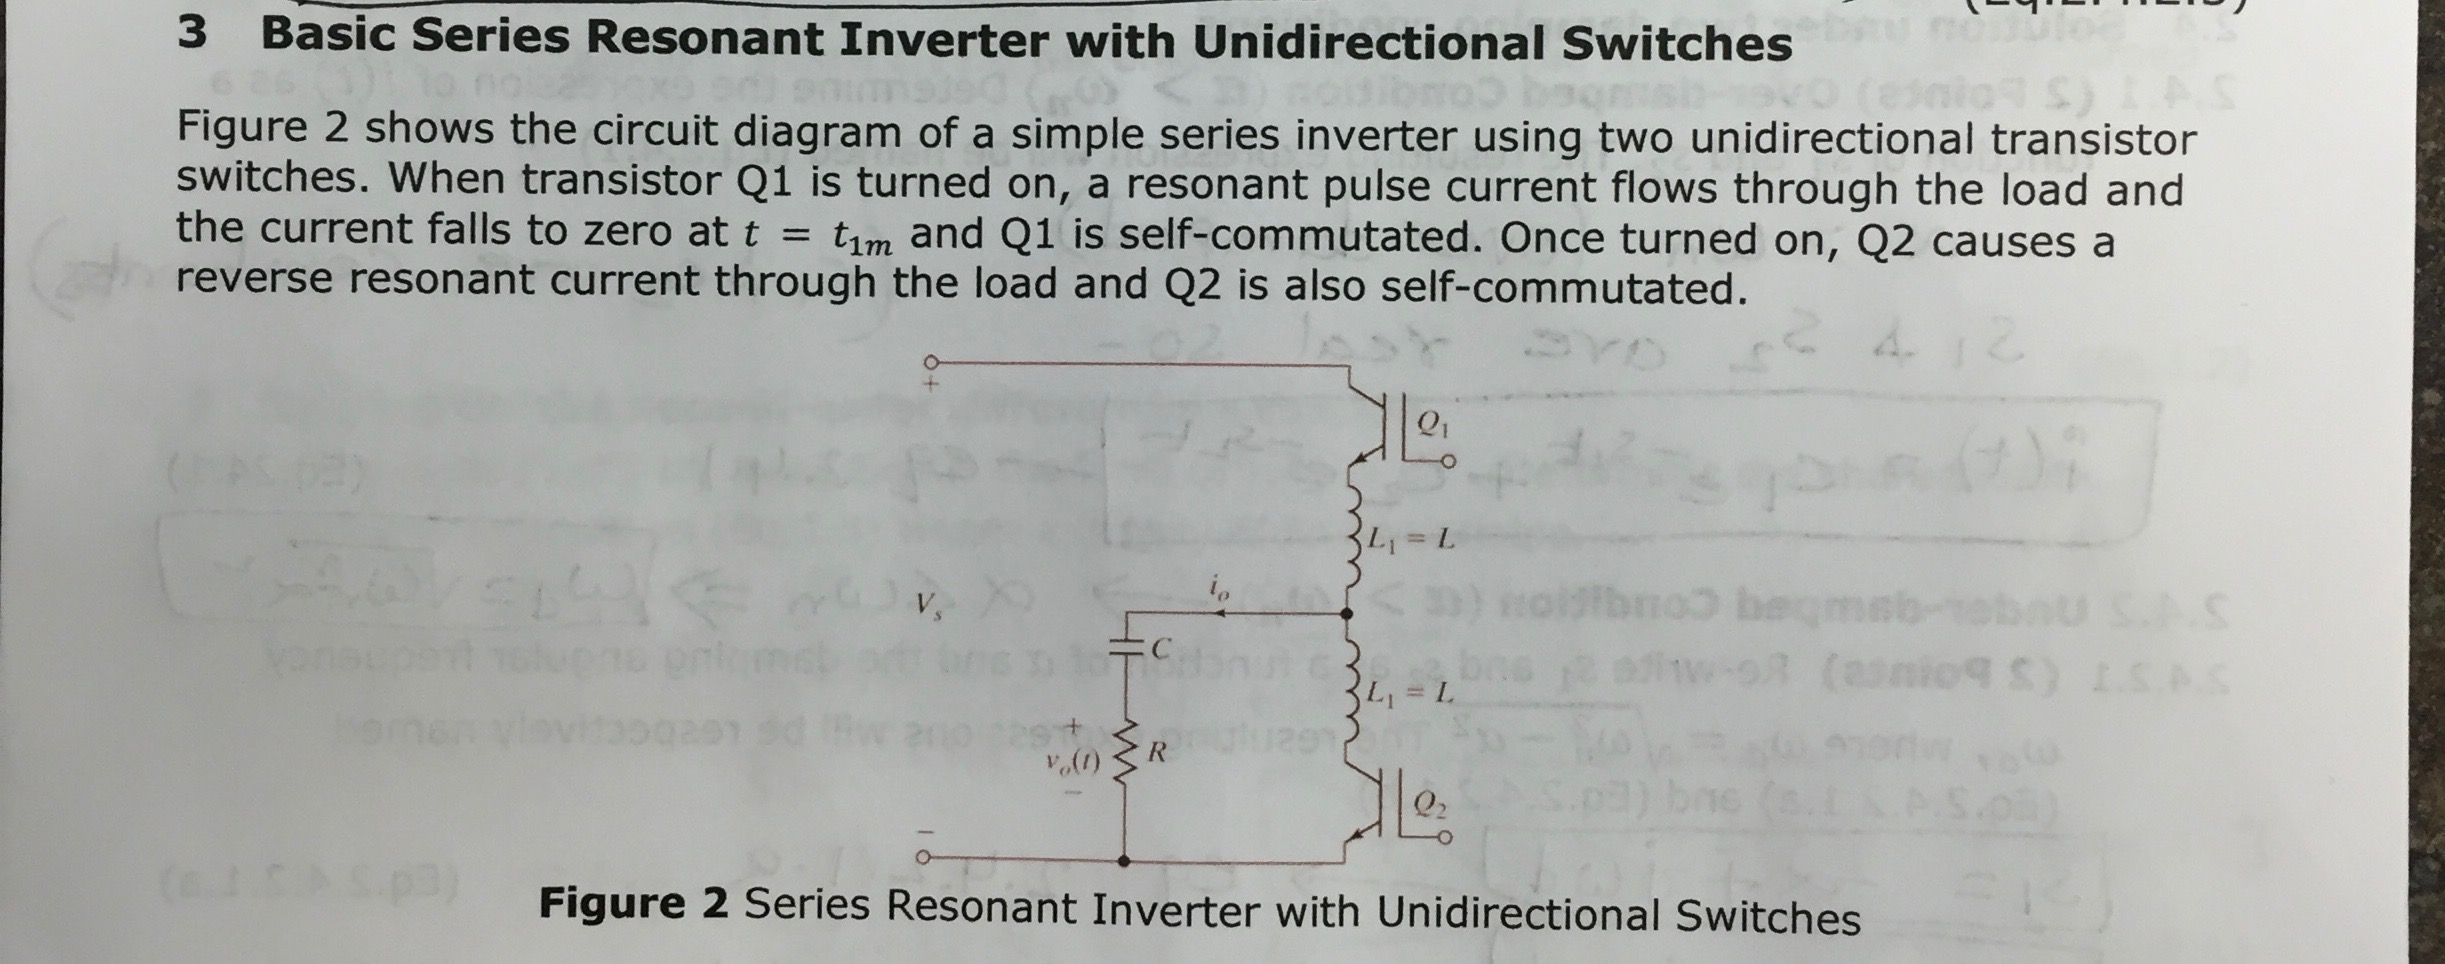 Solved 3 Basic Series Resonant Inverter With Unidirection Simple Circuit Switch Diagram For The Unidirectional Switches Figure 2 Shows Of A